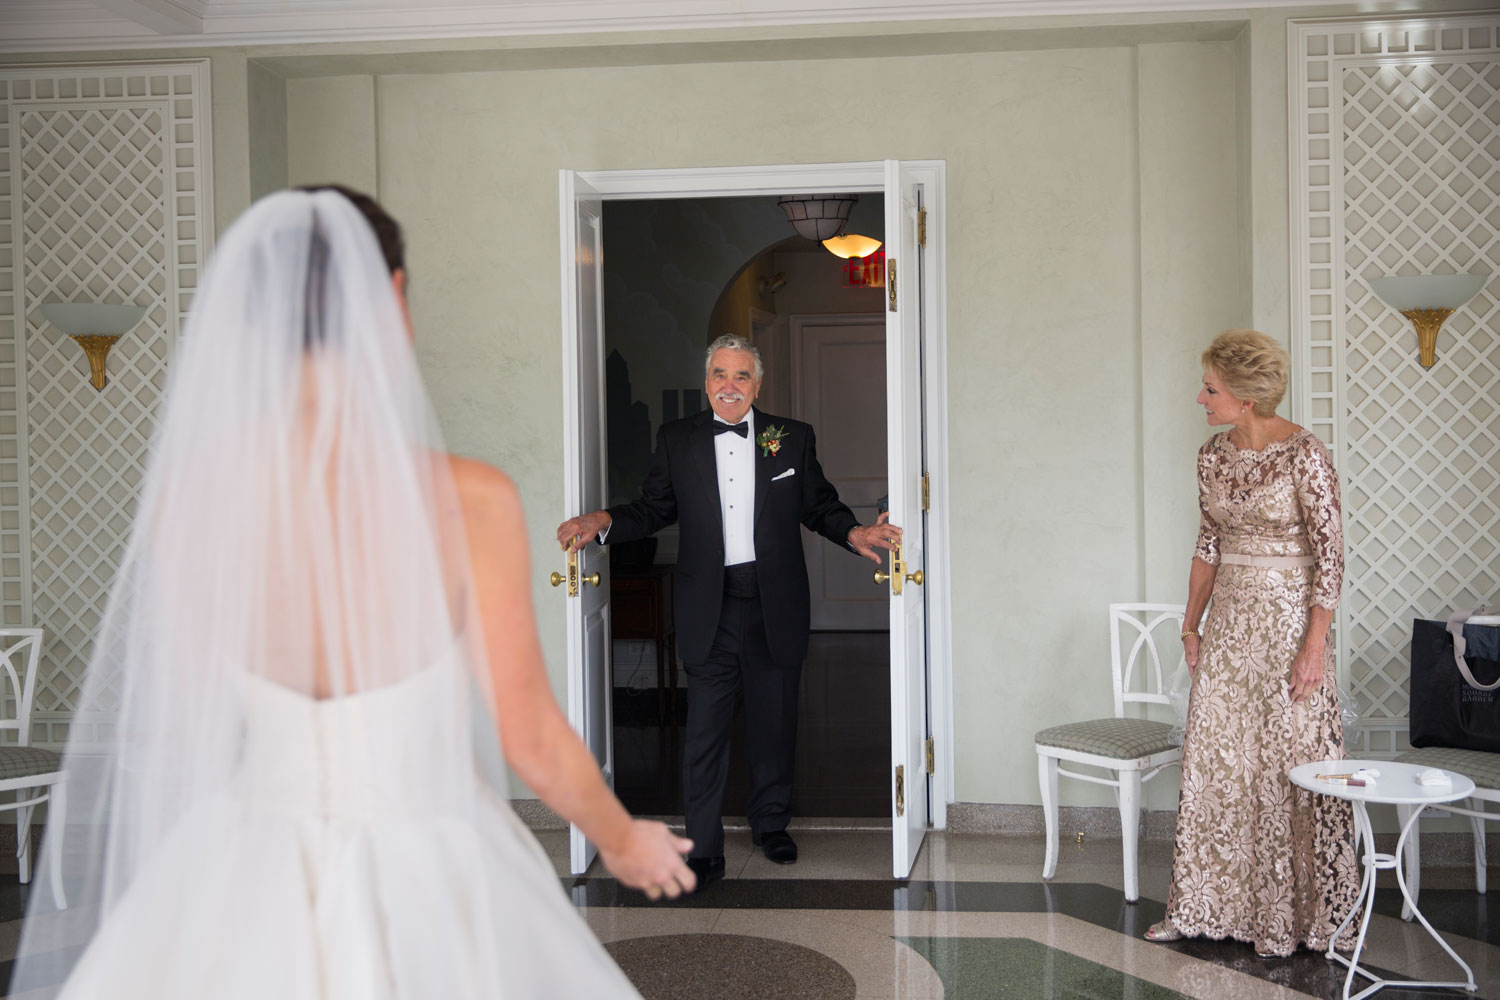 First look between bride mother of bride and father of bride the day by ira lippke